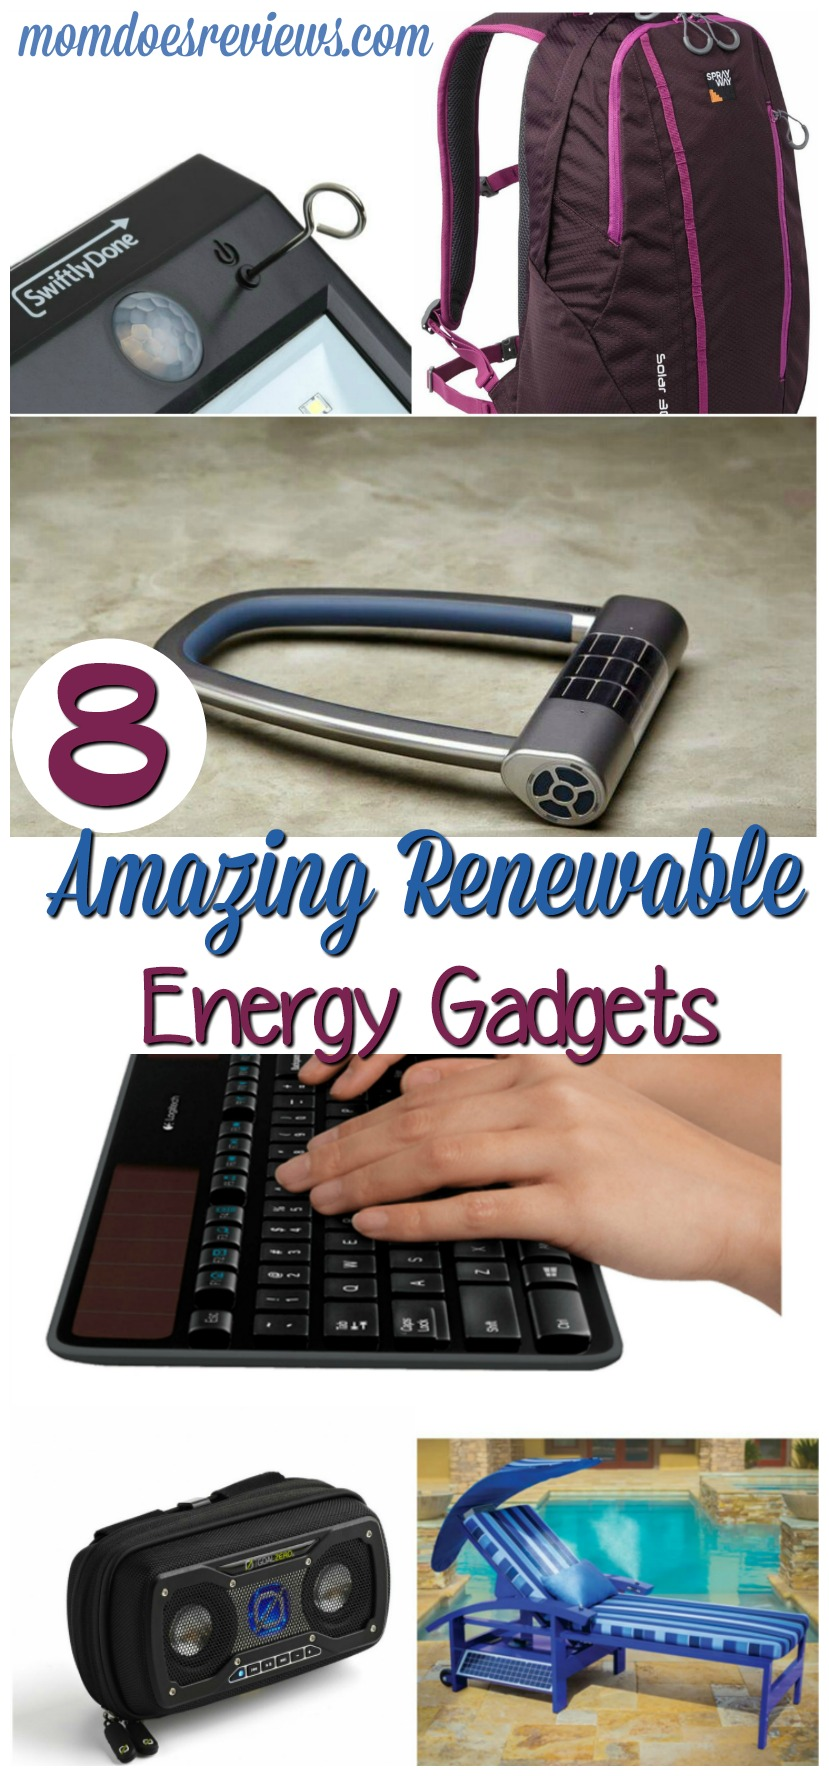 8 Amazing Renewable Energy Gadgets for the Home #greenliving #home #renewableenergy #gadgets